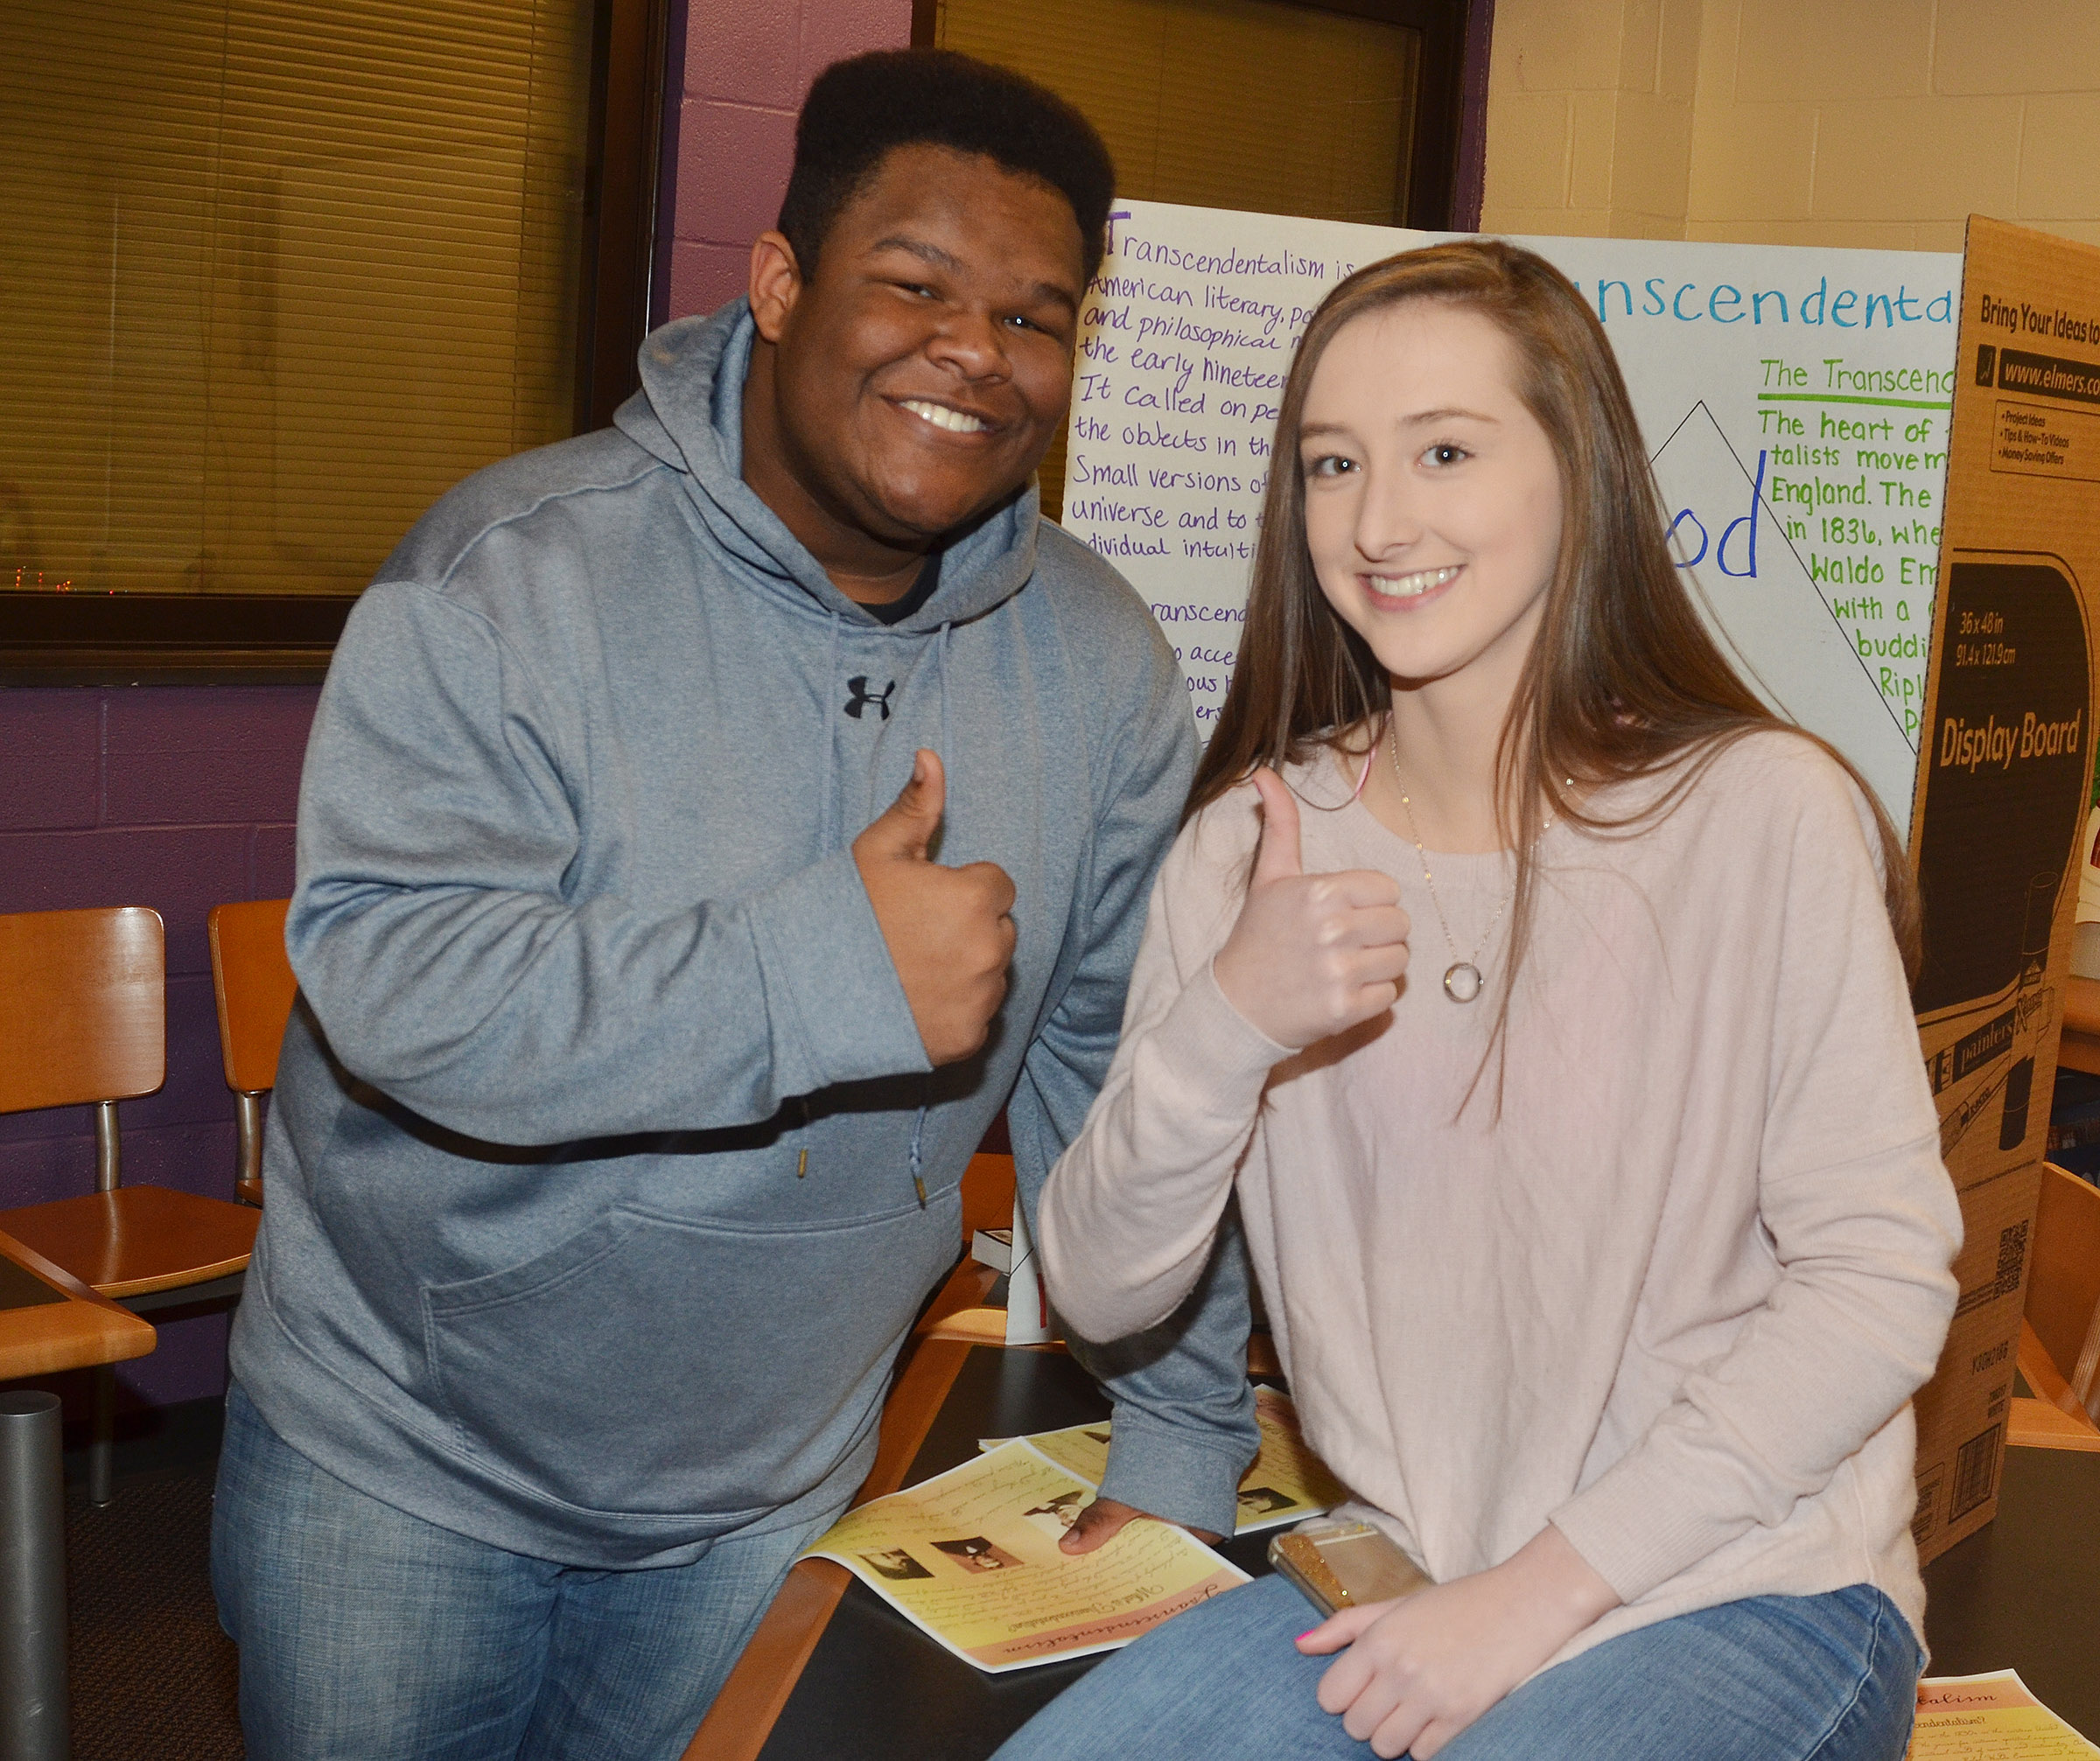 CHS juniors Jeremiah Jackson, at left, and Samantha Mason present about the transcendentalism reform movement.